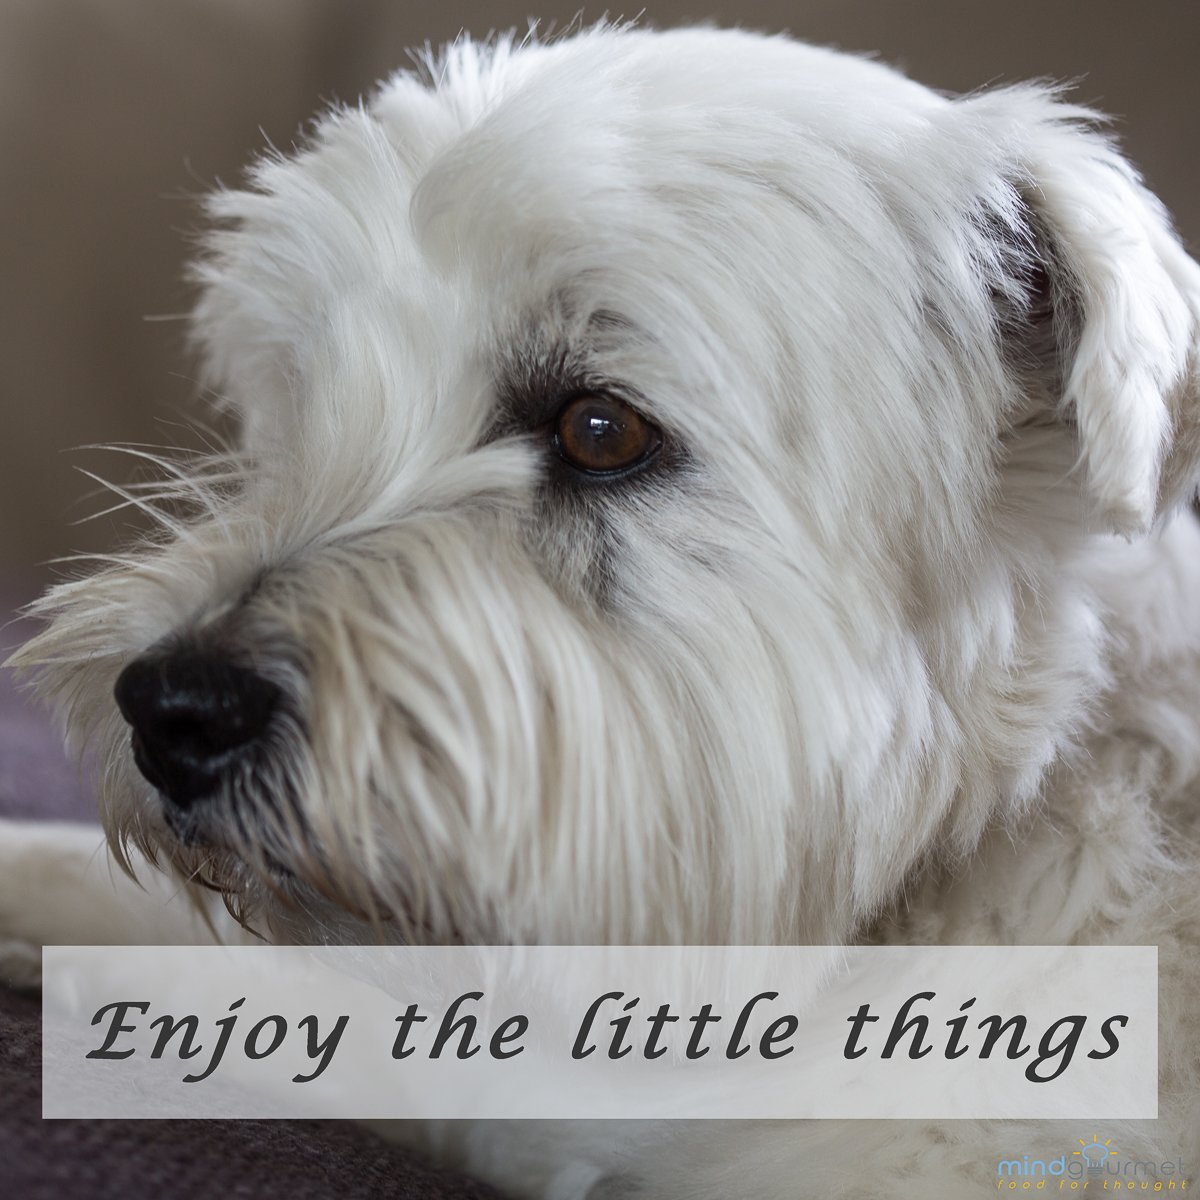 Enjoy the little things! #enjoy #quote #grateful<br>http://pic.twitter.com/GiwzGFeS0U